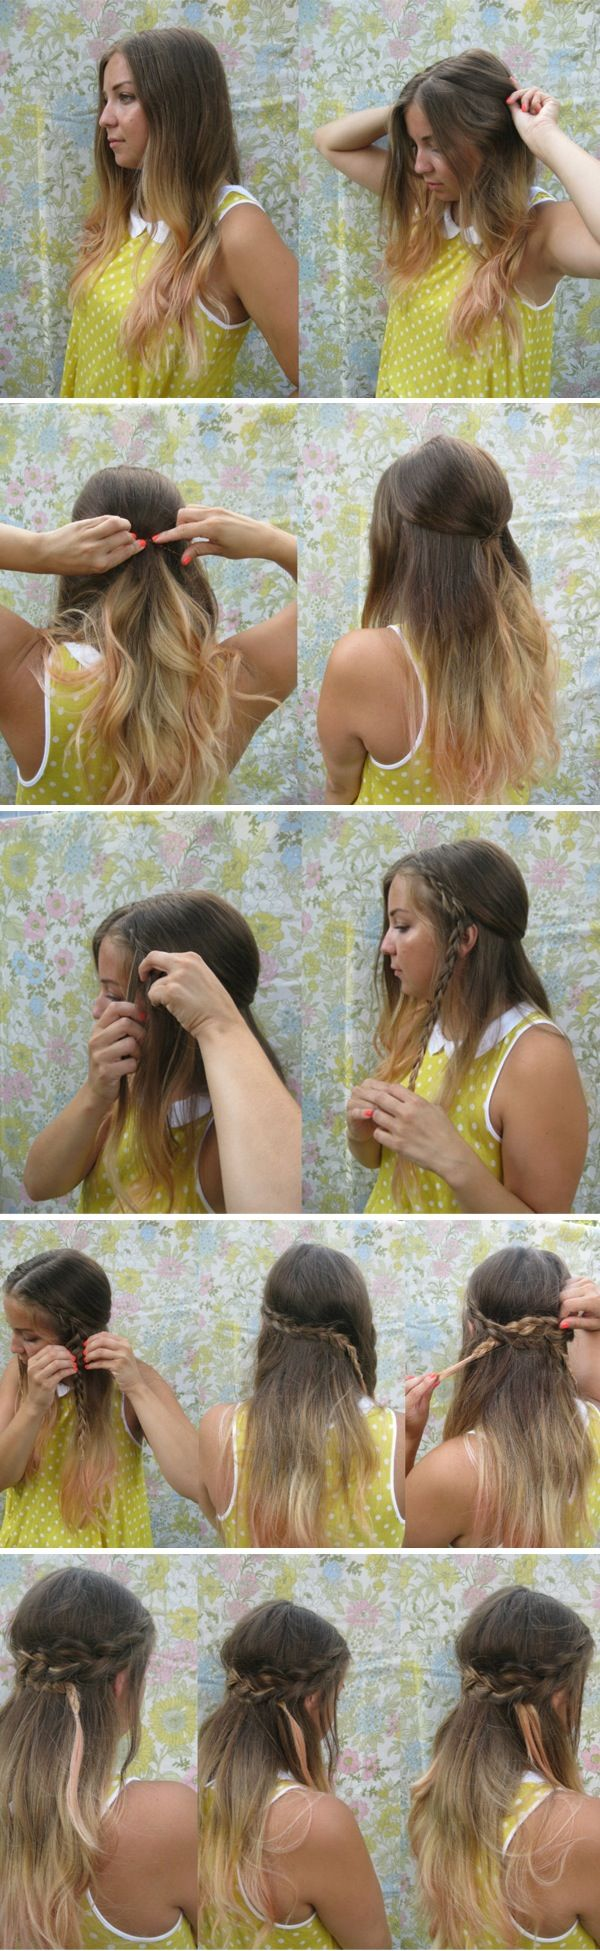 Leave hair in french plaits over night. and add extensions, the 2 new ones above the ears and 2 older ones behind, at the back corners of the head. Have extensions on 1 side and hair scooped to the side. use clampy clip to scoop hair to side and have the plaitey behivey bit equivelant to hair tied up